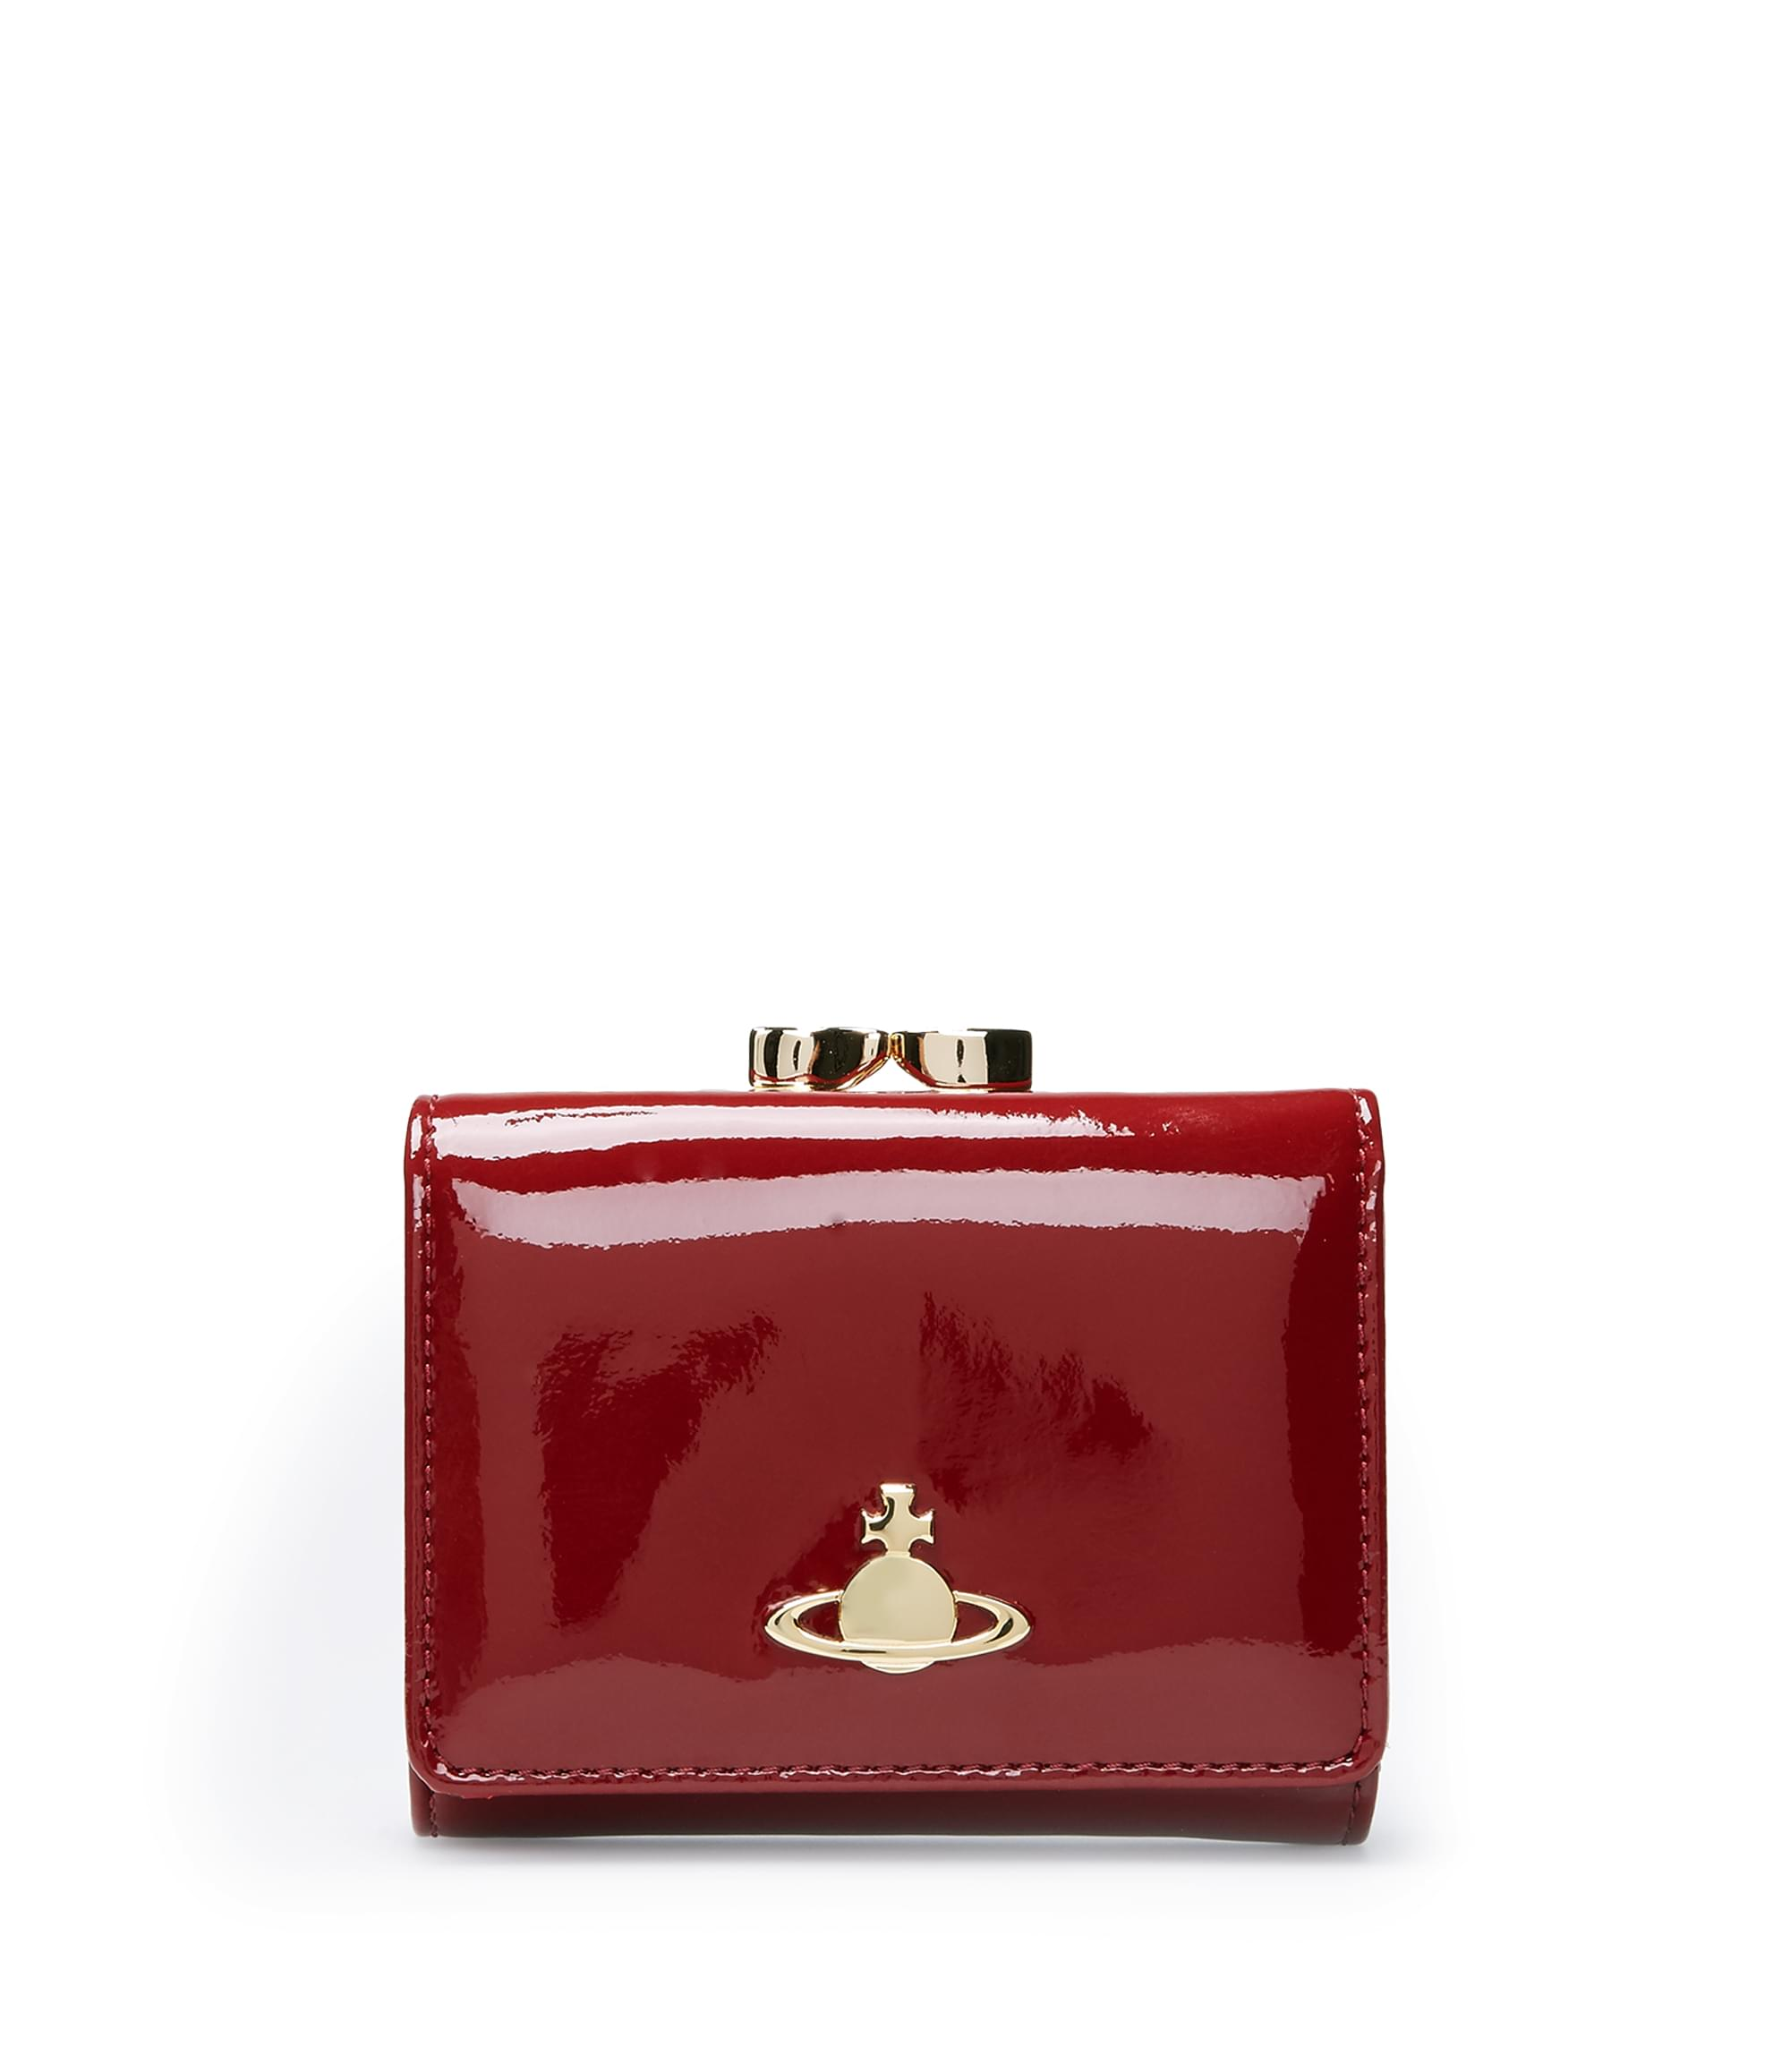 Vivienne Westwood Bordeaux Mirror Ball 1311 Purse